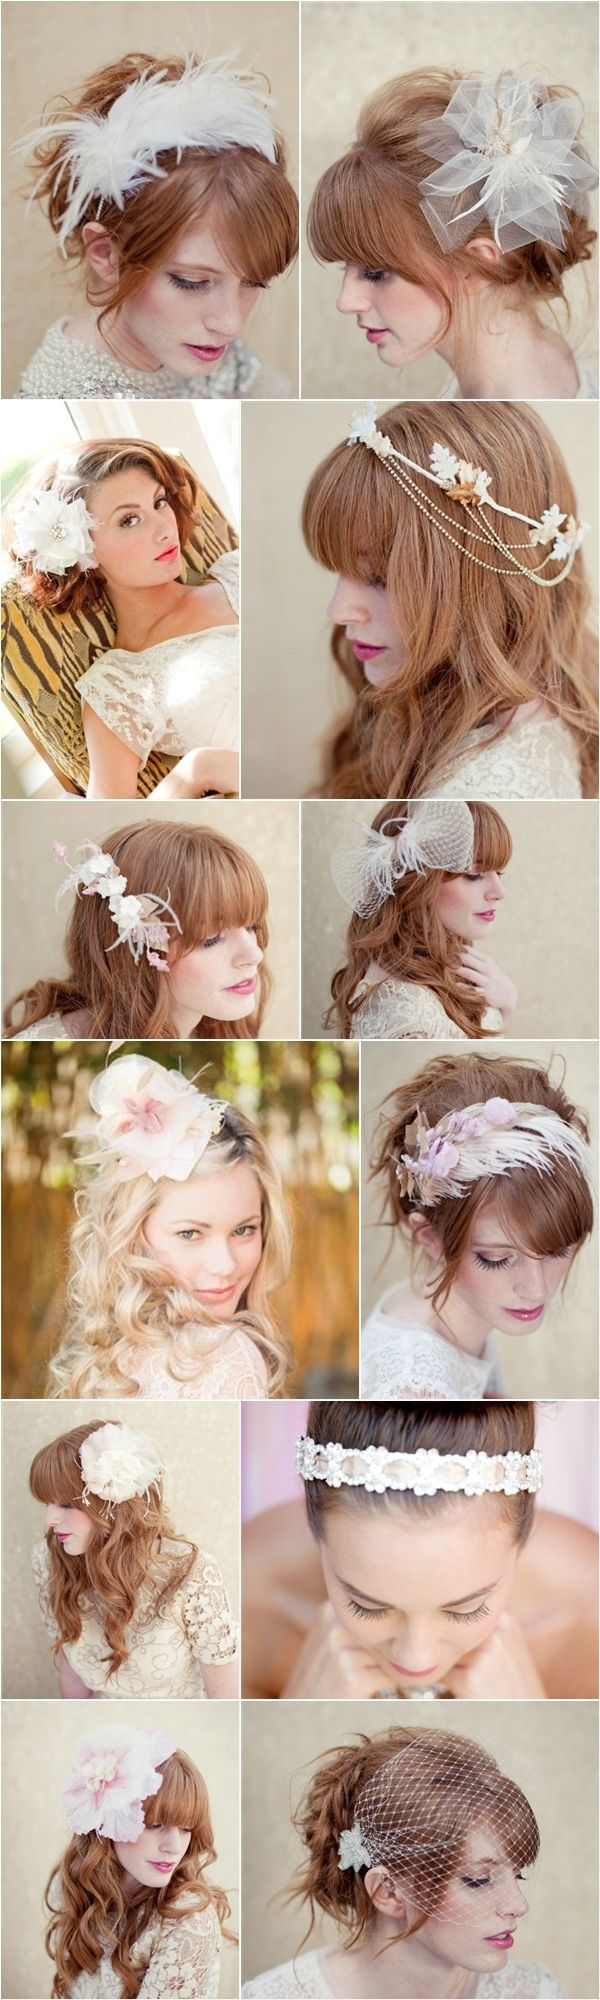 Modern Veil and Headpiece Ideas